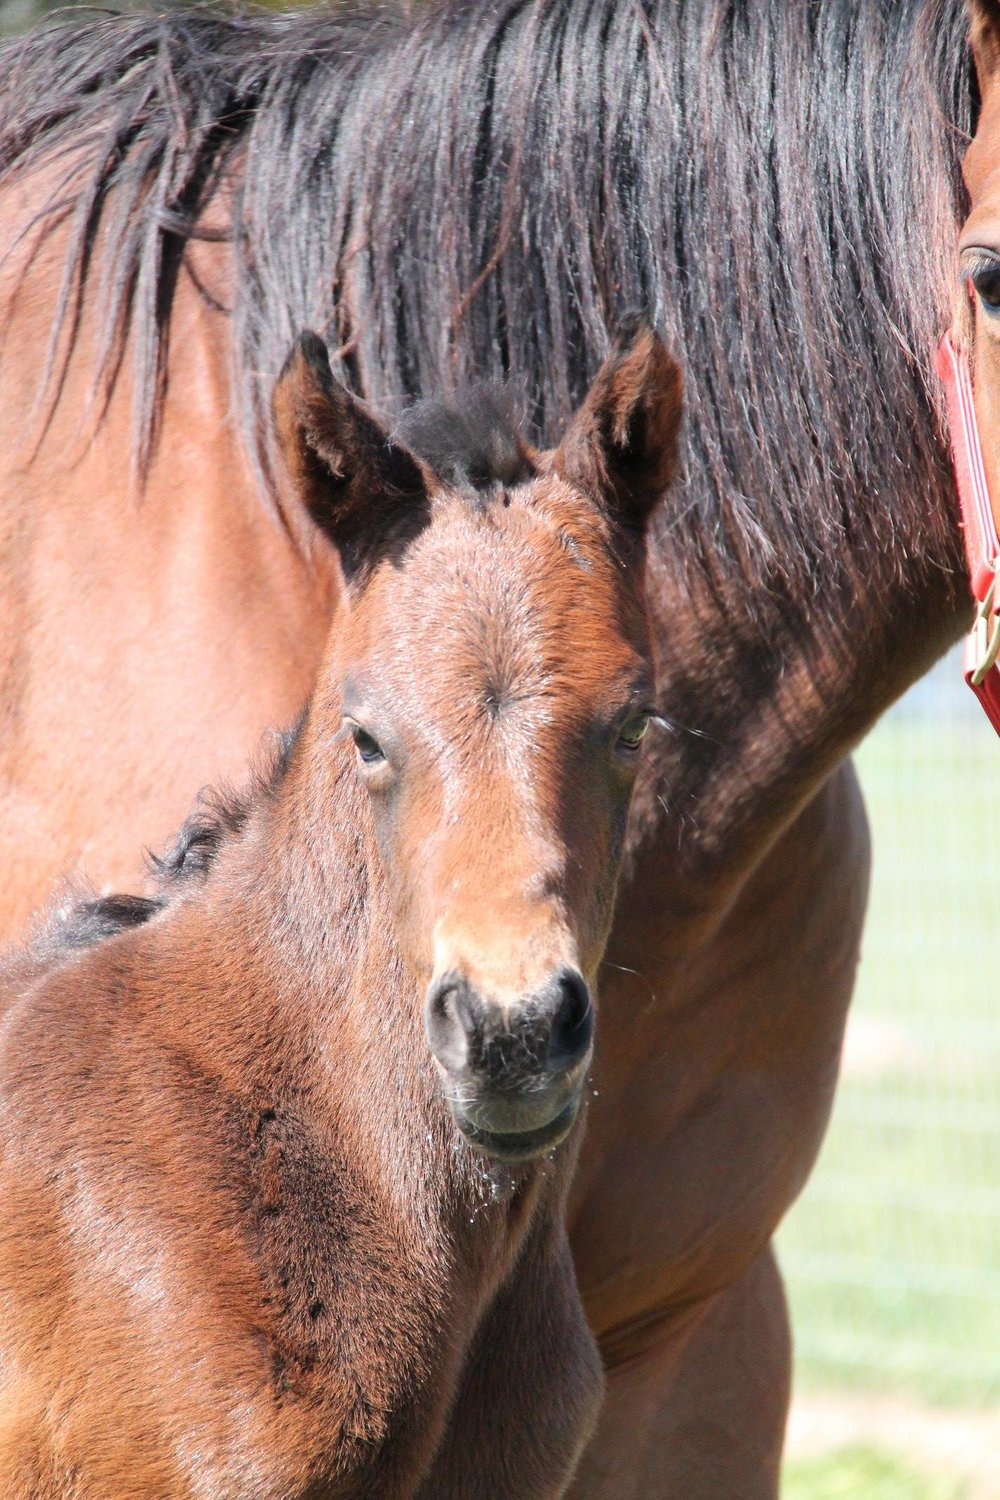 Sven (So You Think x Bellissima Miss Colt)